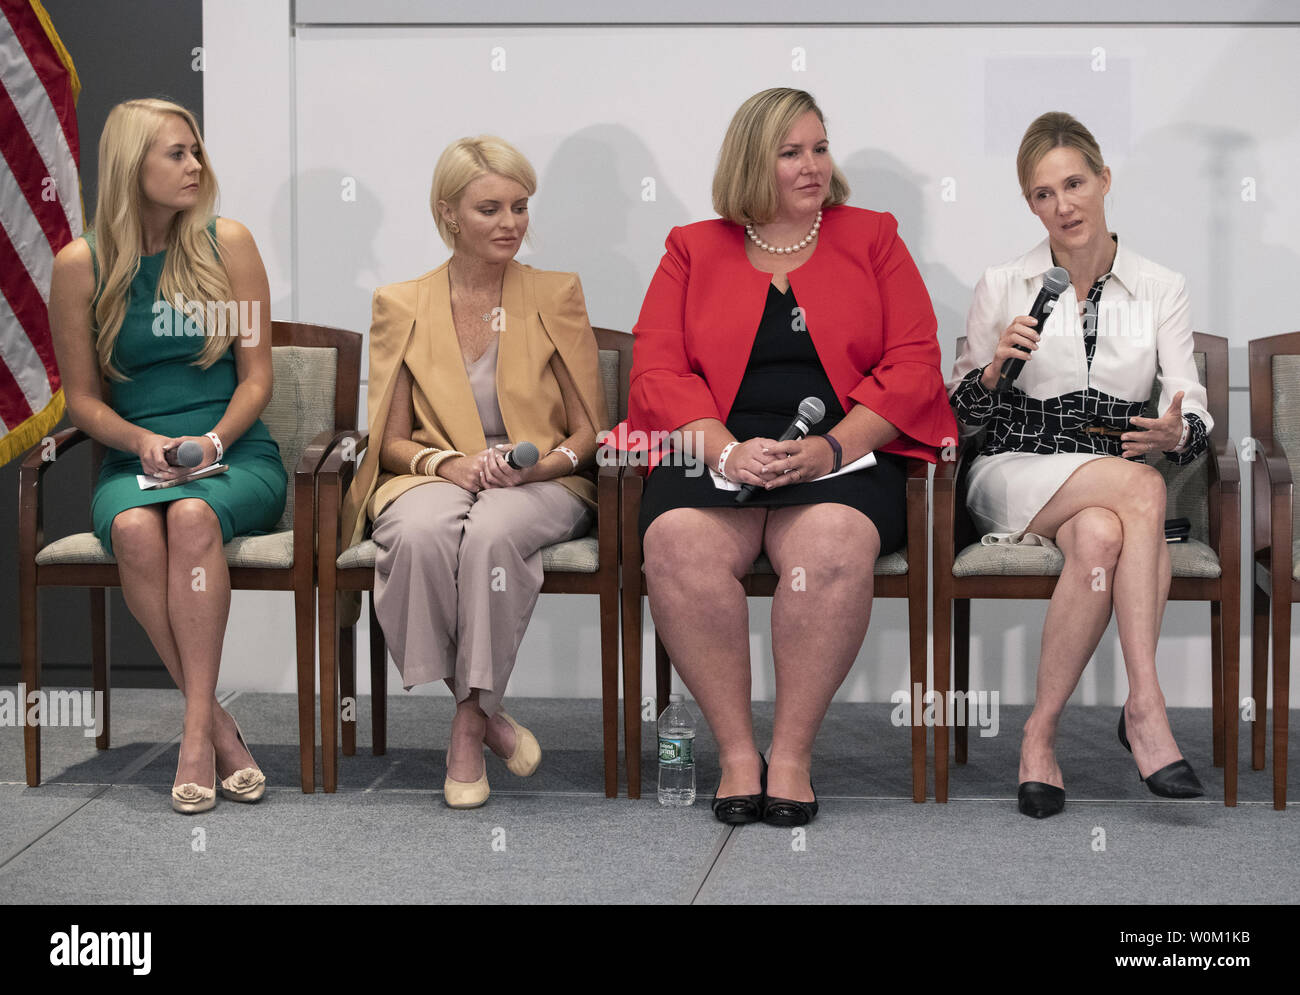 First lady Melania Trump (not shown) listens as social media executives discuss online bullying during a Cyberbullying Summit at the Department of Health and Human Resources building in Rockville, Maryland on August 20, 2018.  The participants in this panel were Facebook's  Antigone Davis (R), Jen Hanley of Family Online Safety Institute, Google's CoCo Pannell and Twitter's Lauren Culbertson. The summit was part of the first lady's Be Best campaign.   Photo by Pat Benic/UPI Stock Photo